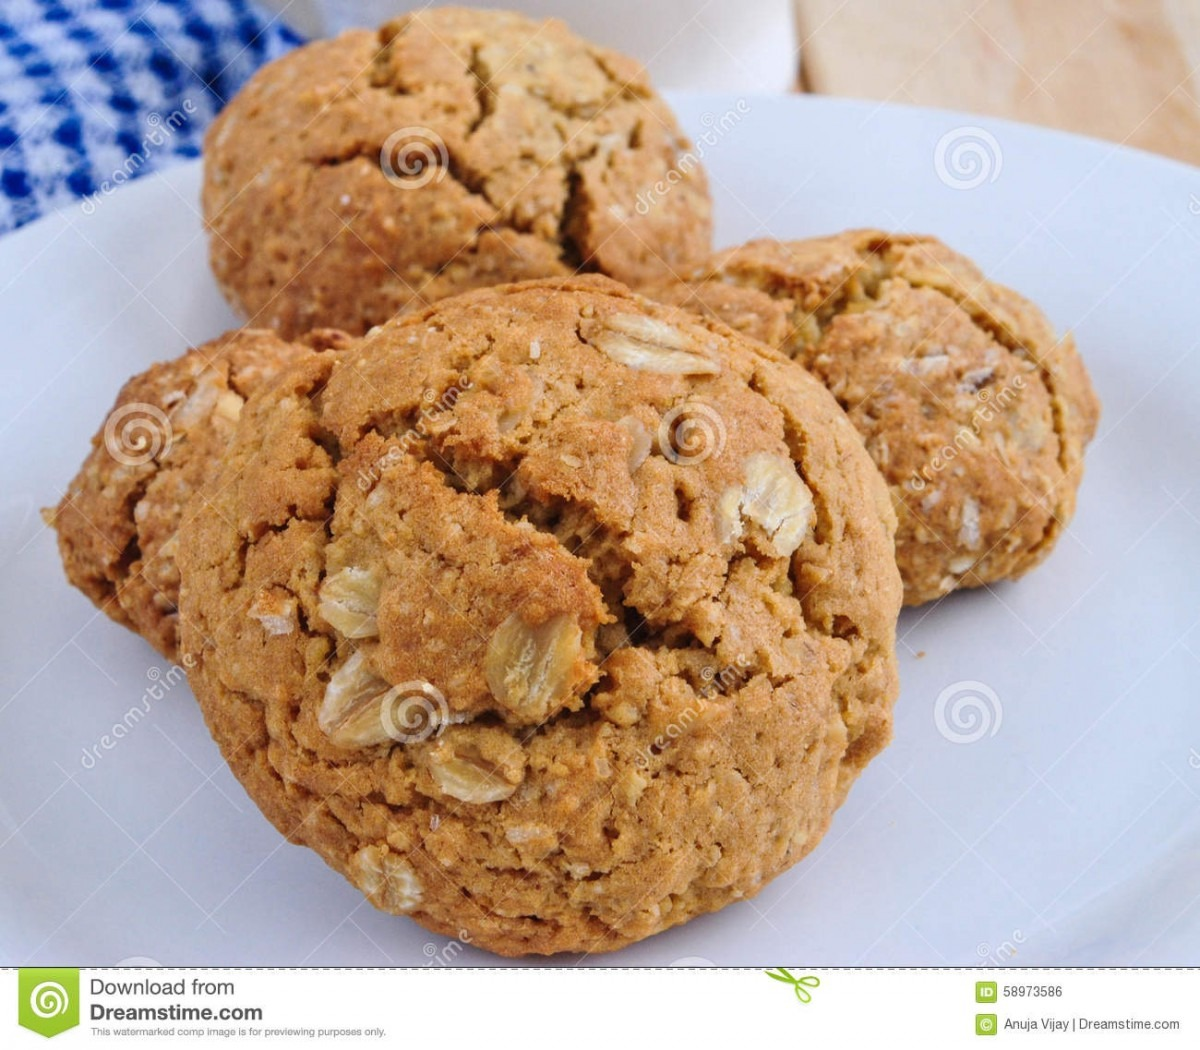 Rolled Oats Cookies Stock Photo  Image Of Oats, Nutrition